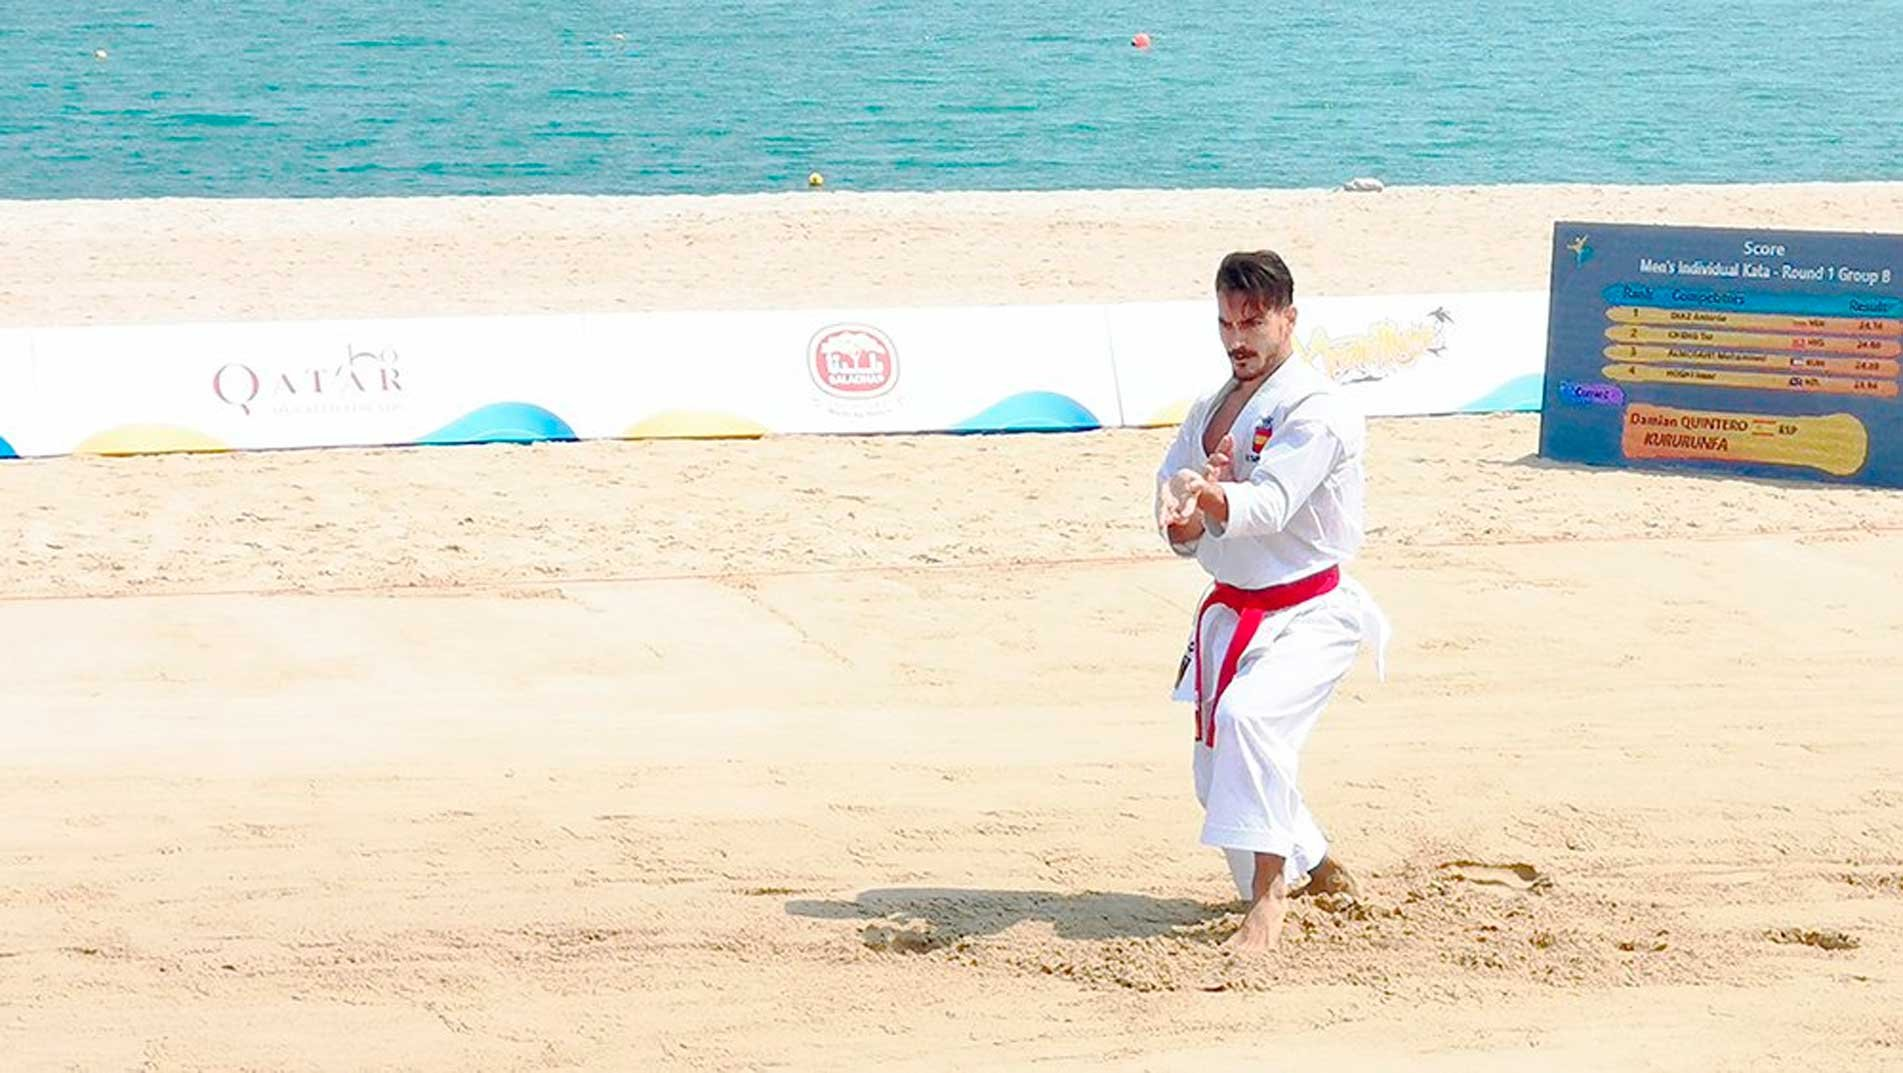 Karate makes history in memorable first day of ANOC World Beach Games